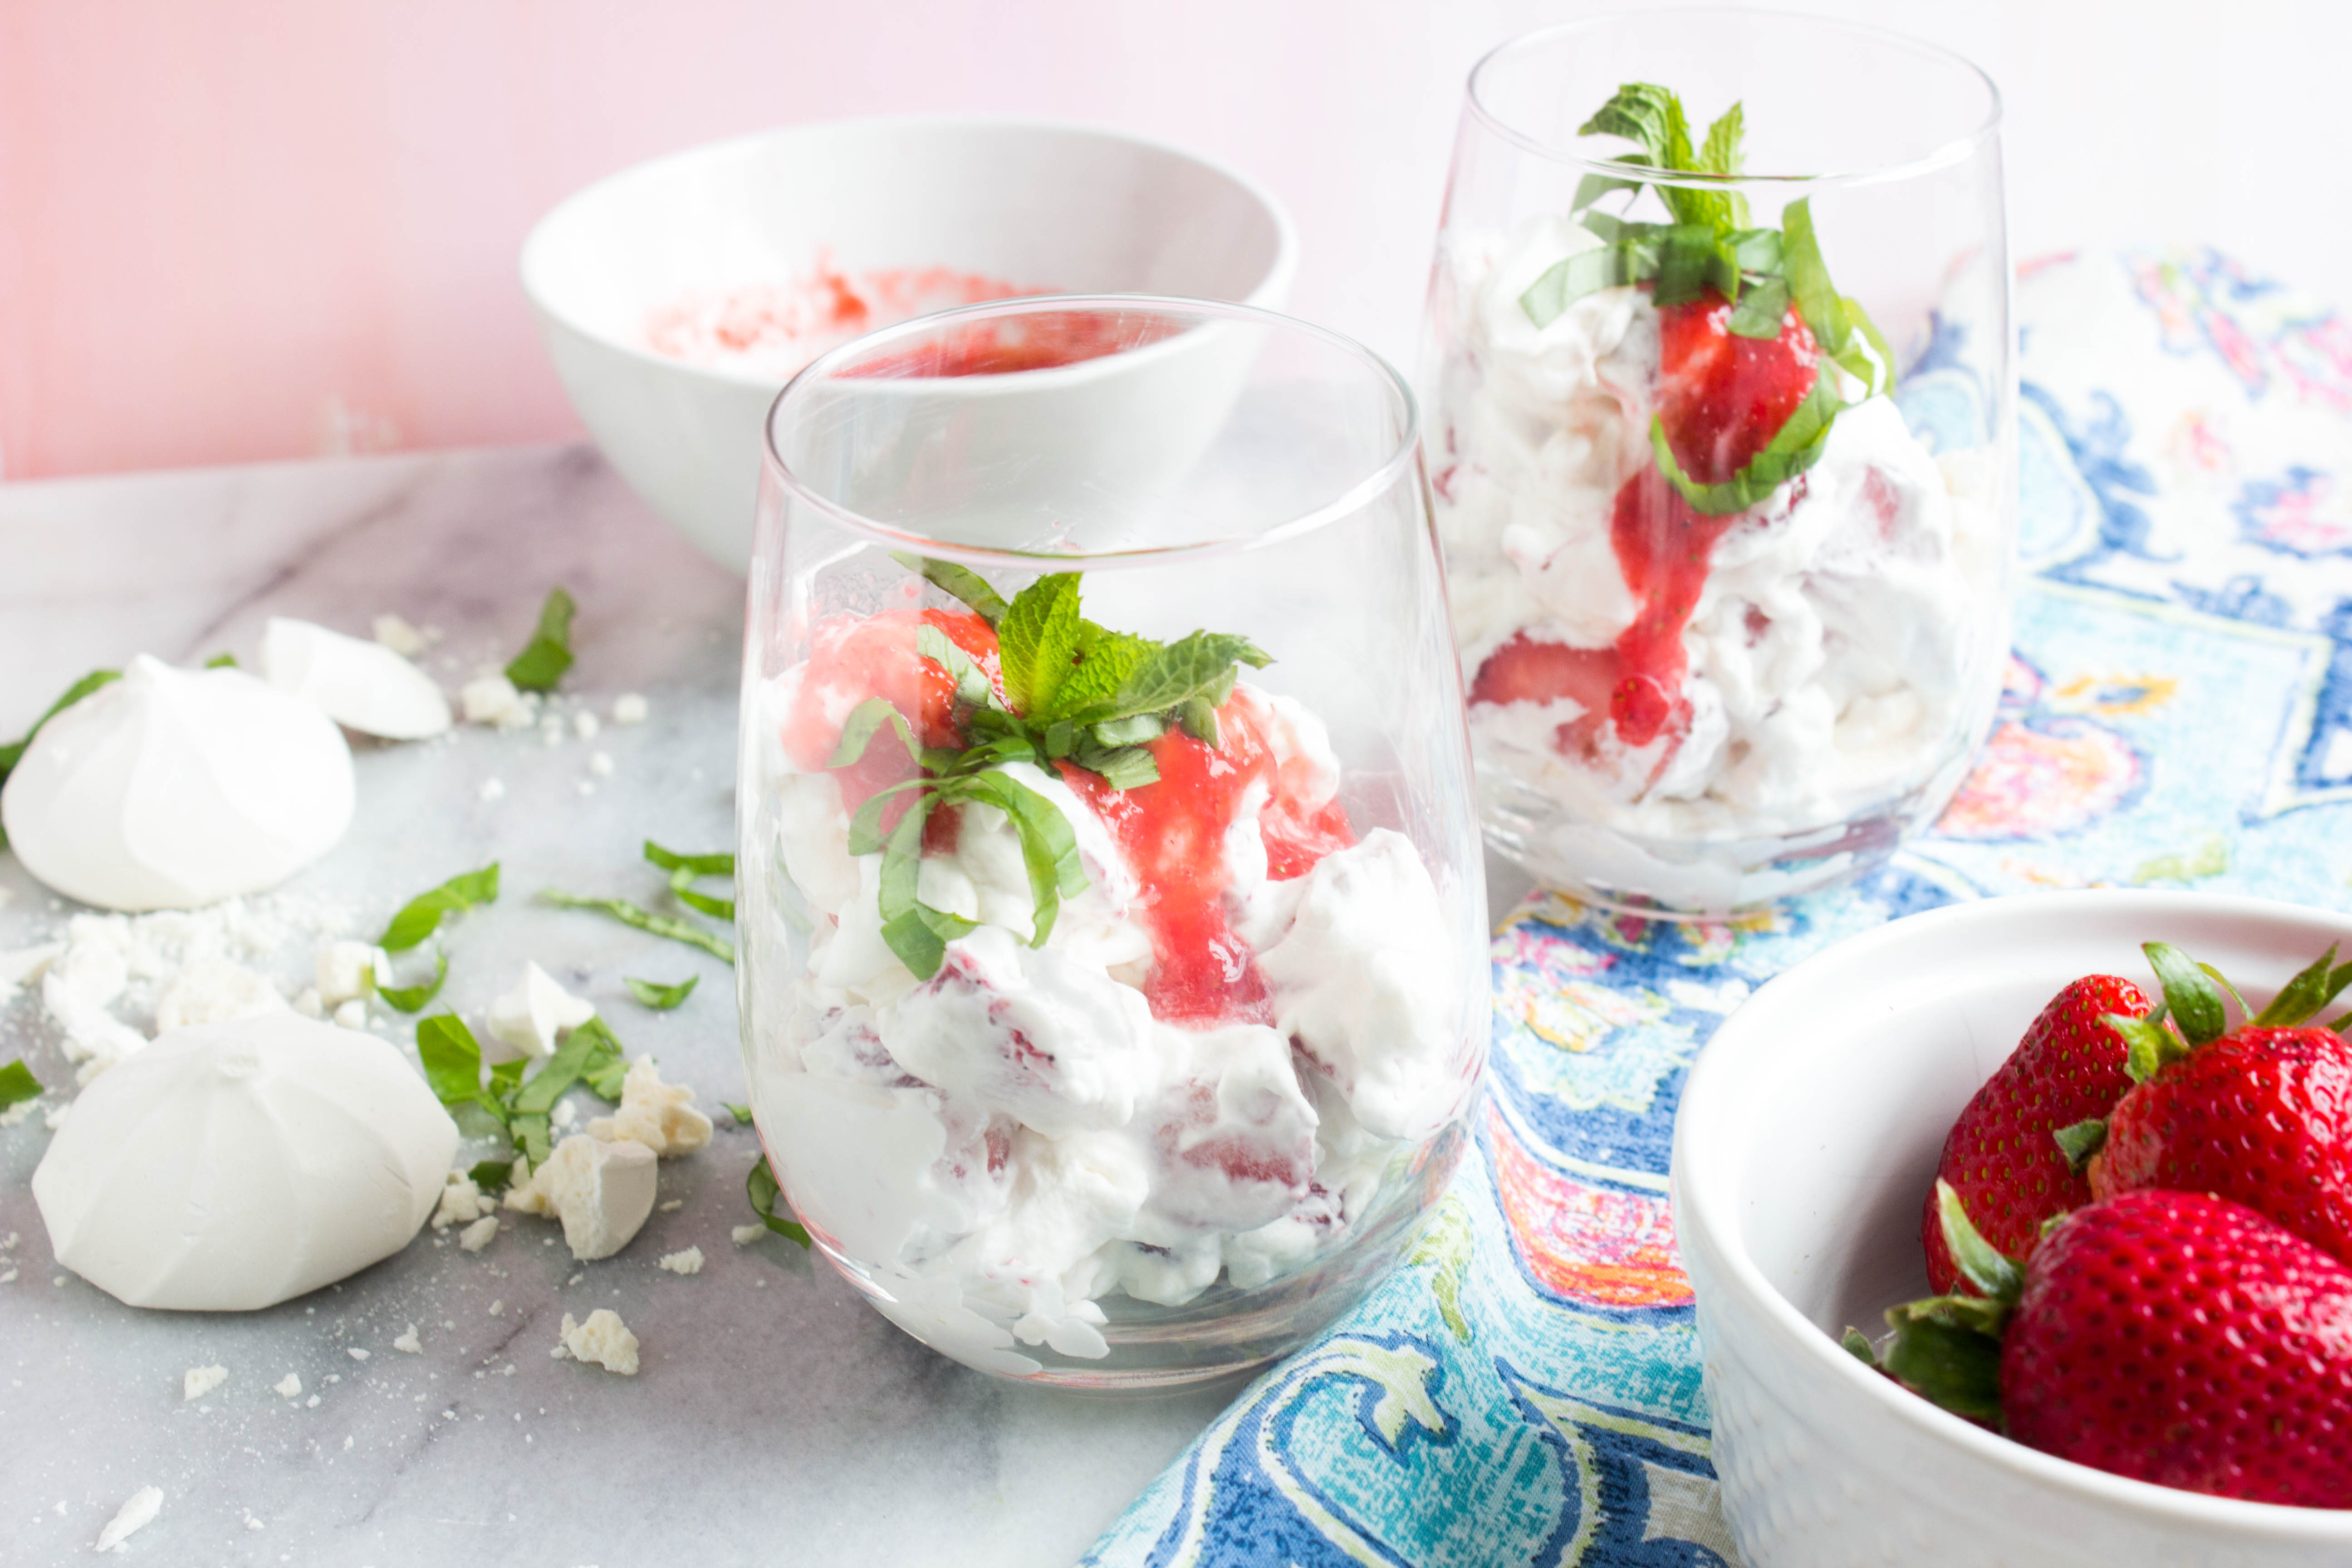 Strawberry Basil Eton Mess